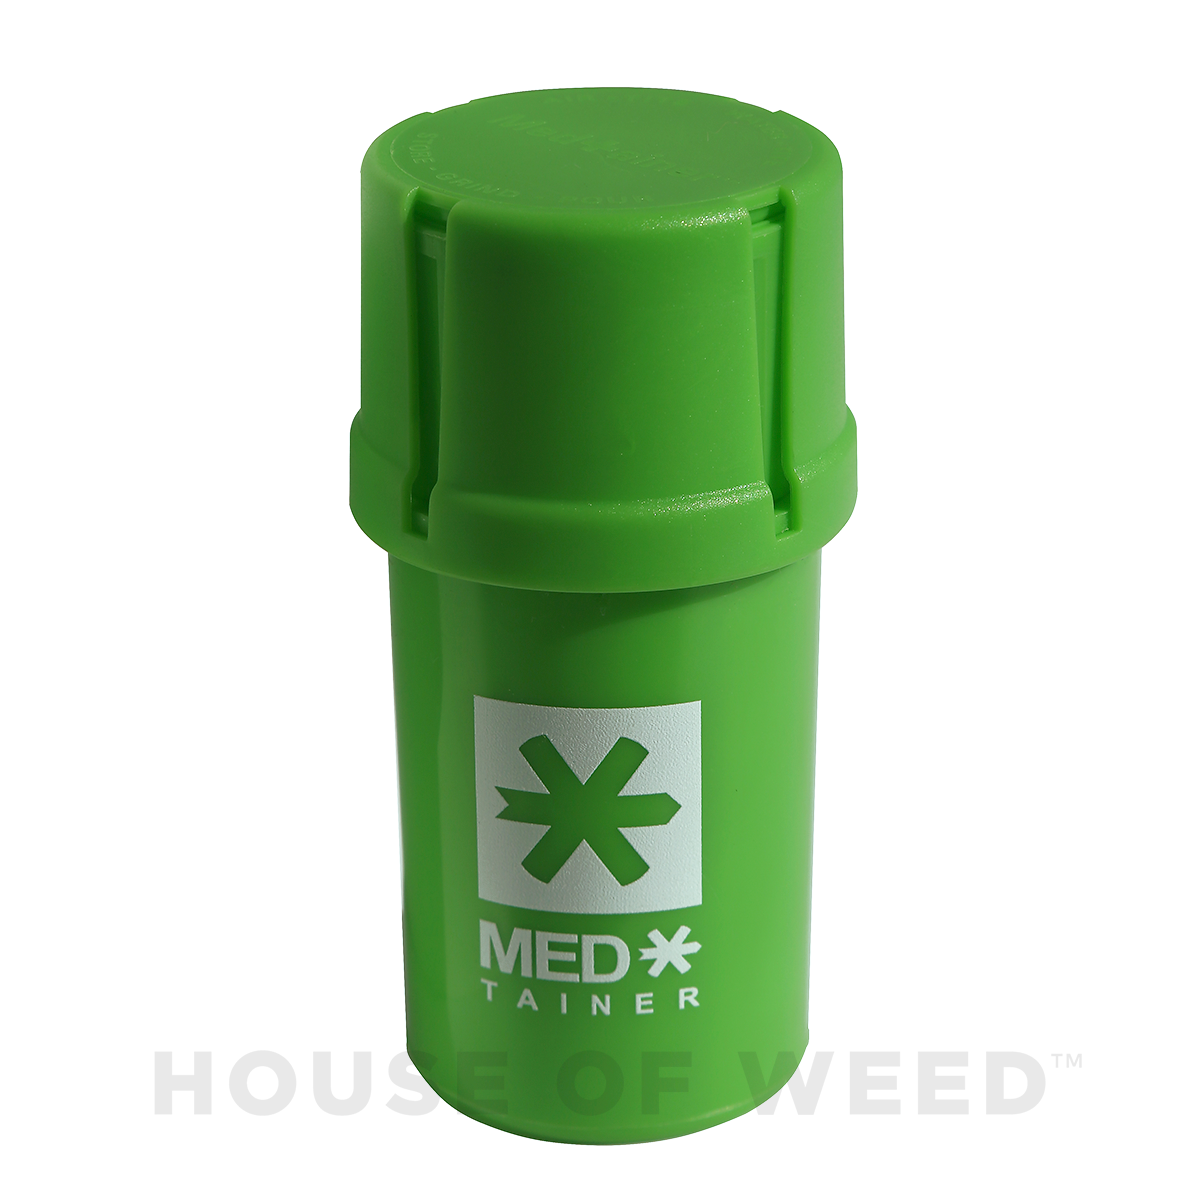 Medtainer - Classic Green